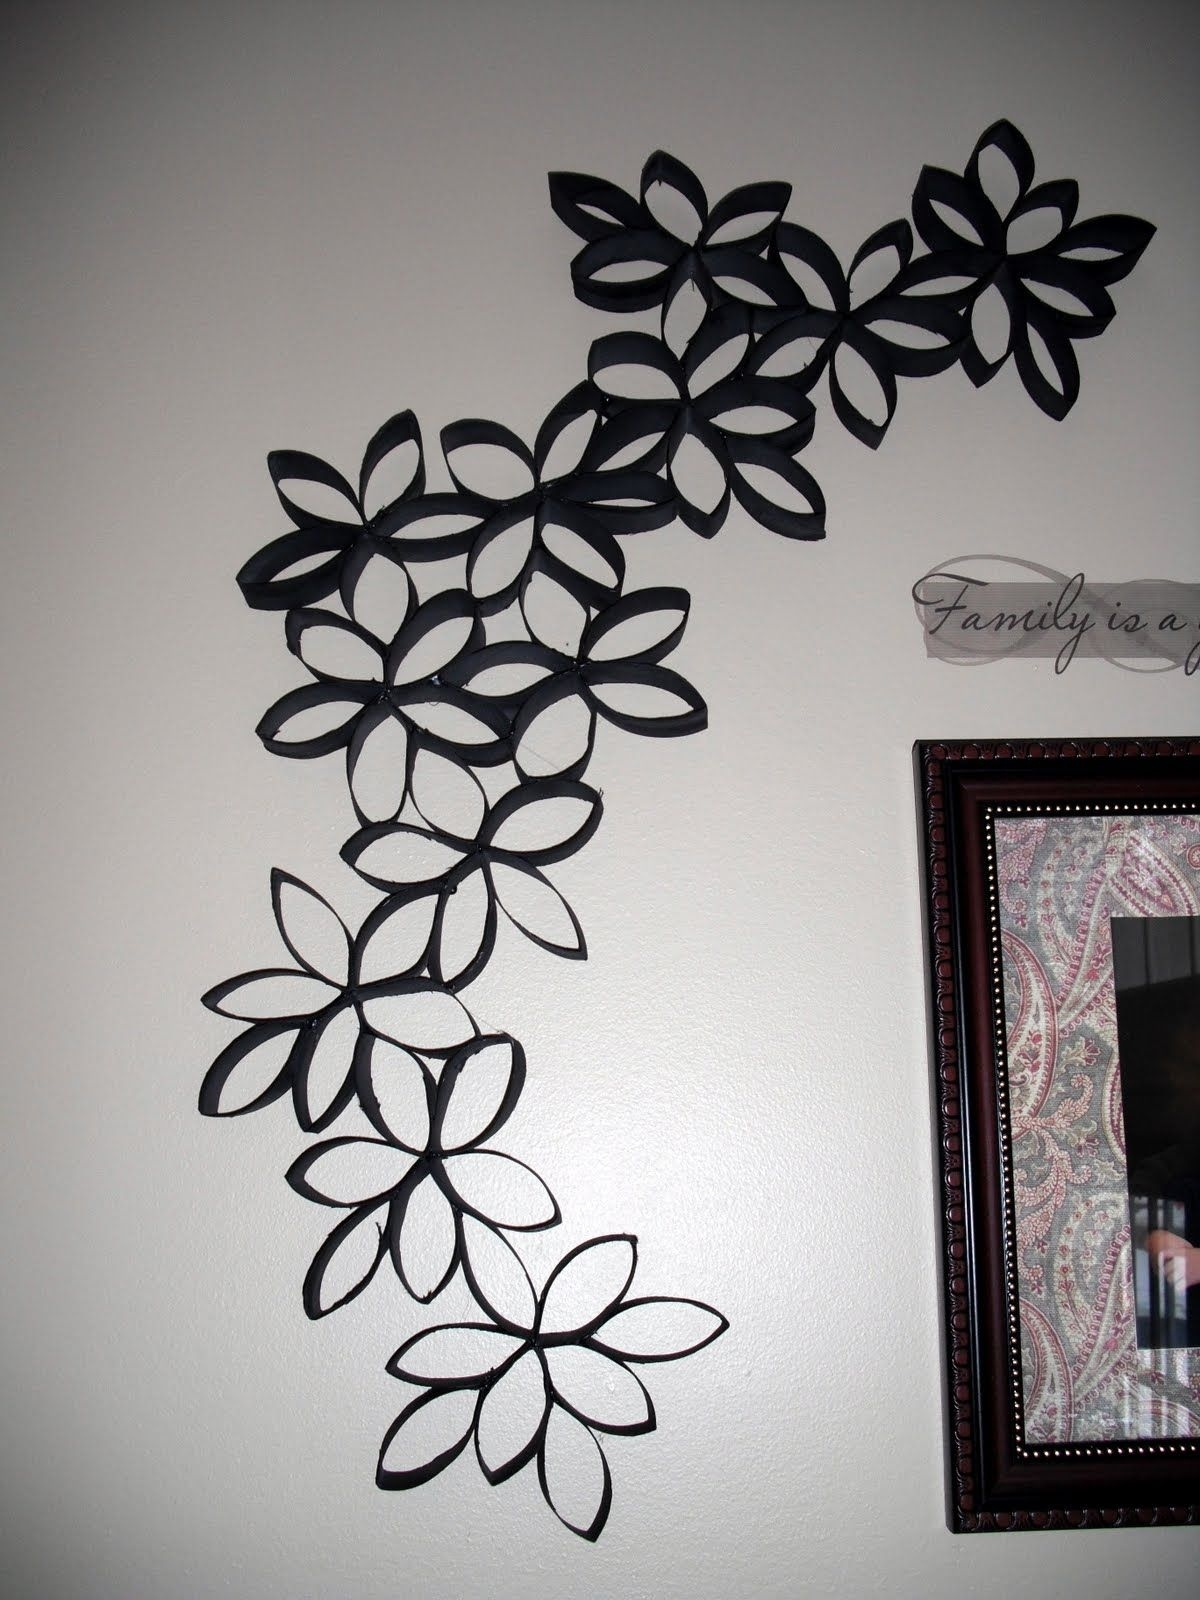 Toilet Paper Roll Wall Art | Cottrell Family: Wall Decor With Toilet for Toilet Paper Roll Wall Art (Image 17 of 20)